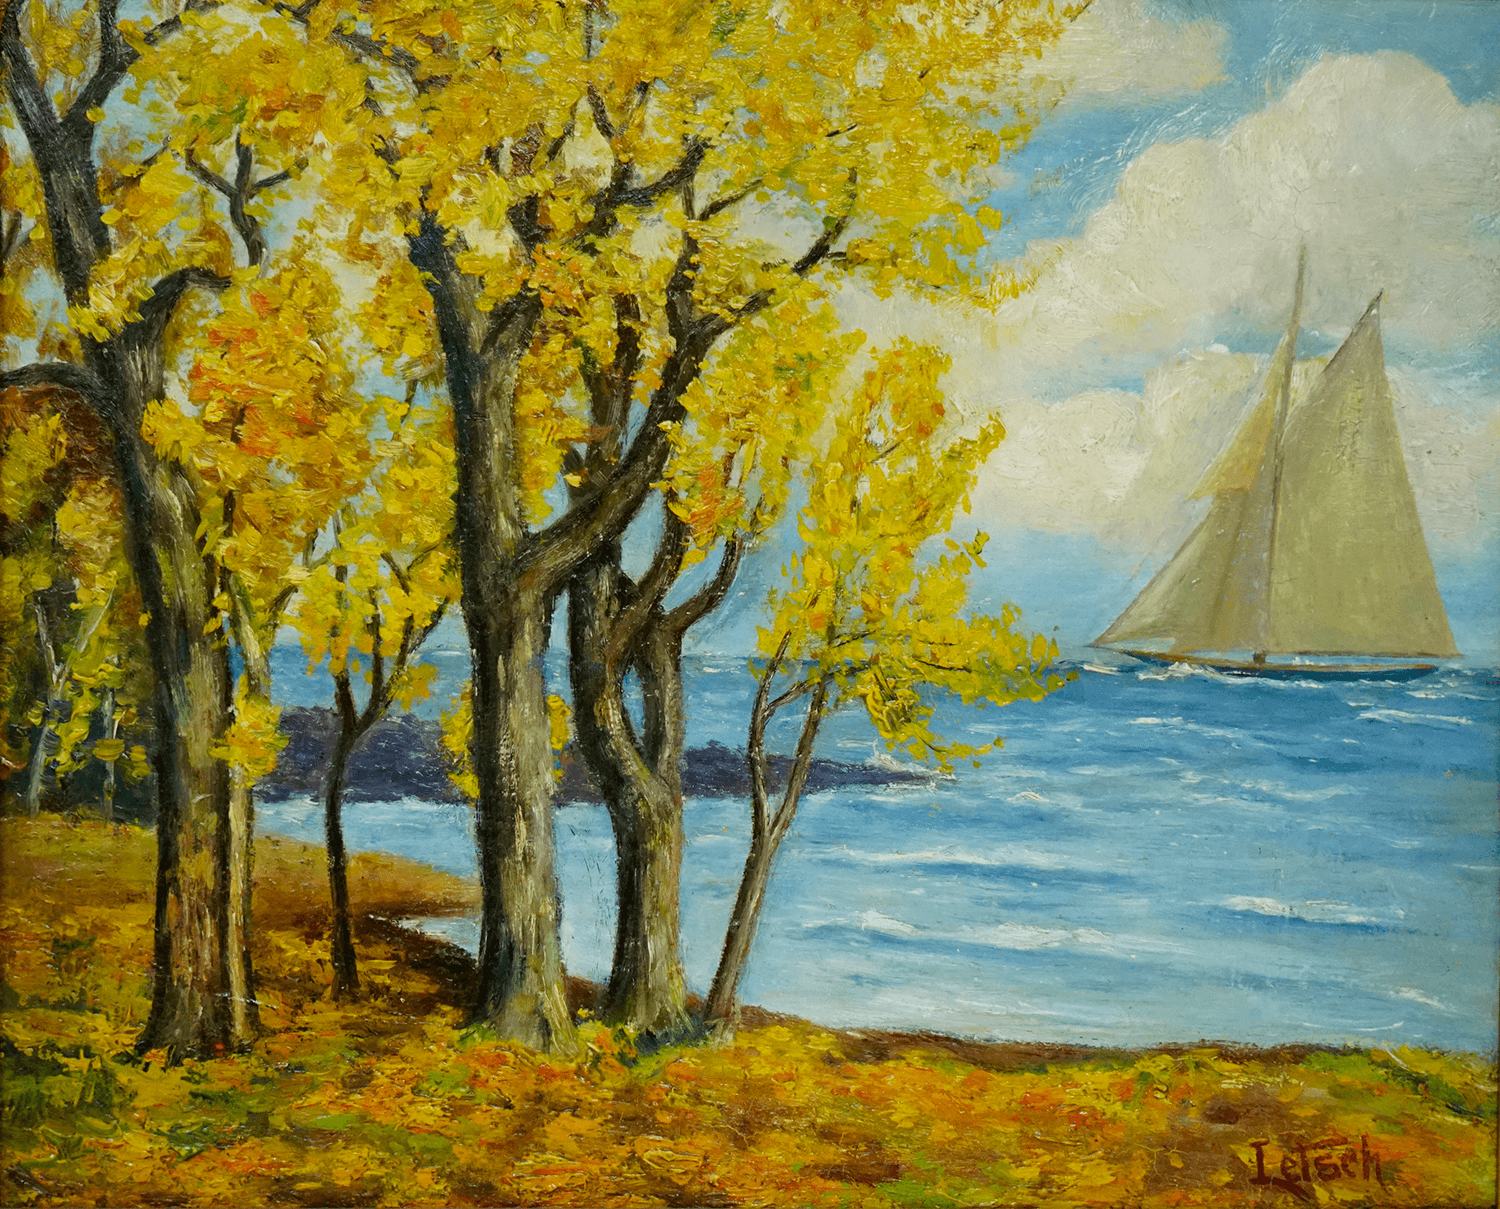 Louis Letsch Painting of Sailbot